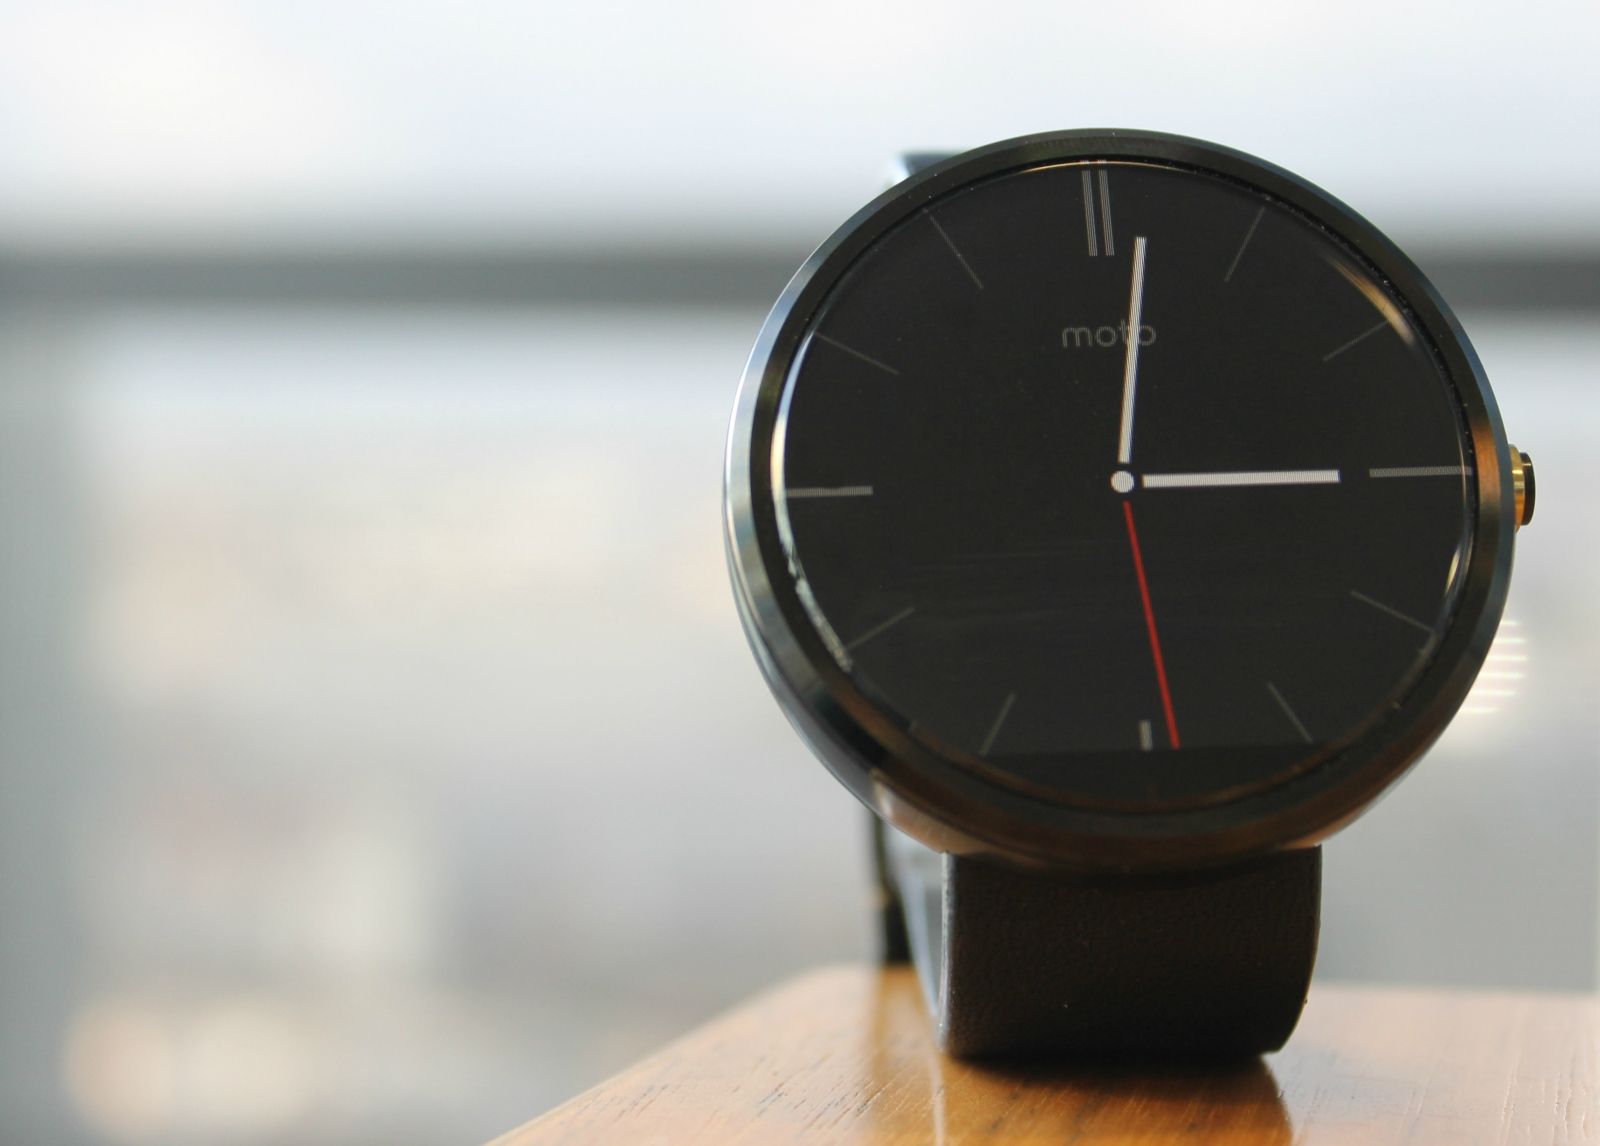 Best Smartwatches 2014 - Motorola Moto 360